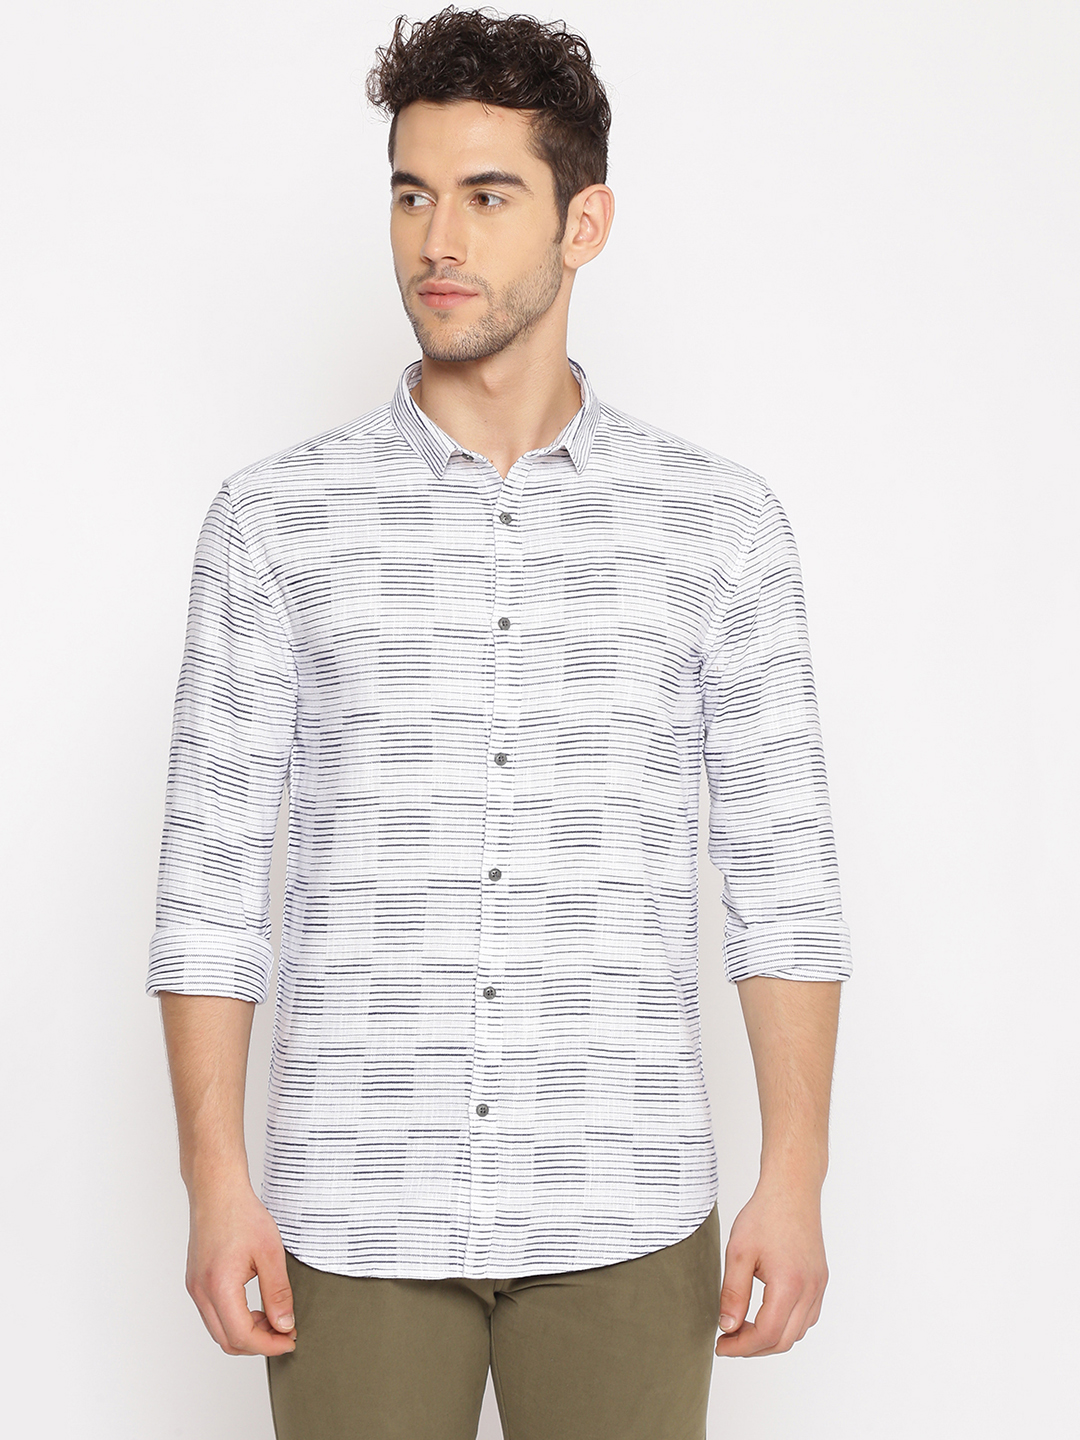 Showoff | SHOWOFF Men's  Cotton Casual White Printed Slim Fit Shirt